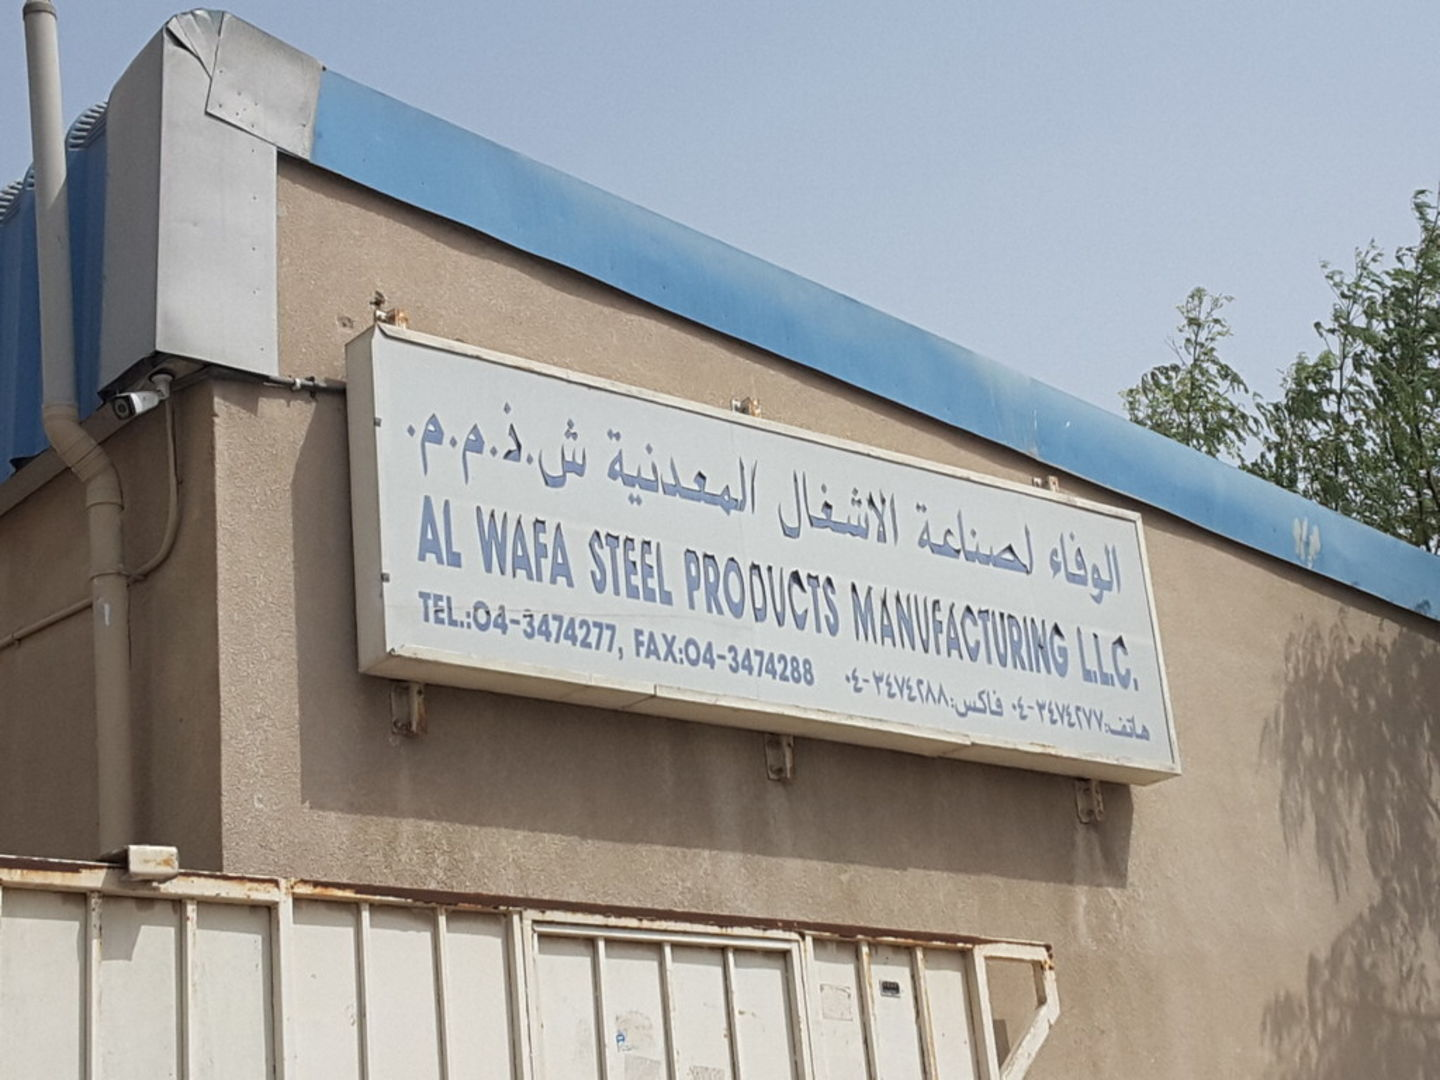 Al Wafa Steel Products Manufacturing, (Chemical & Metal